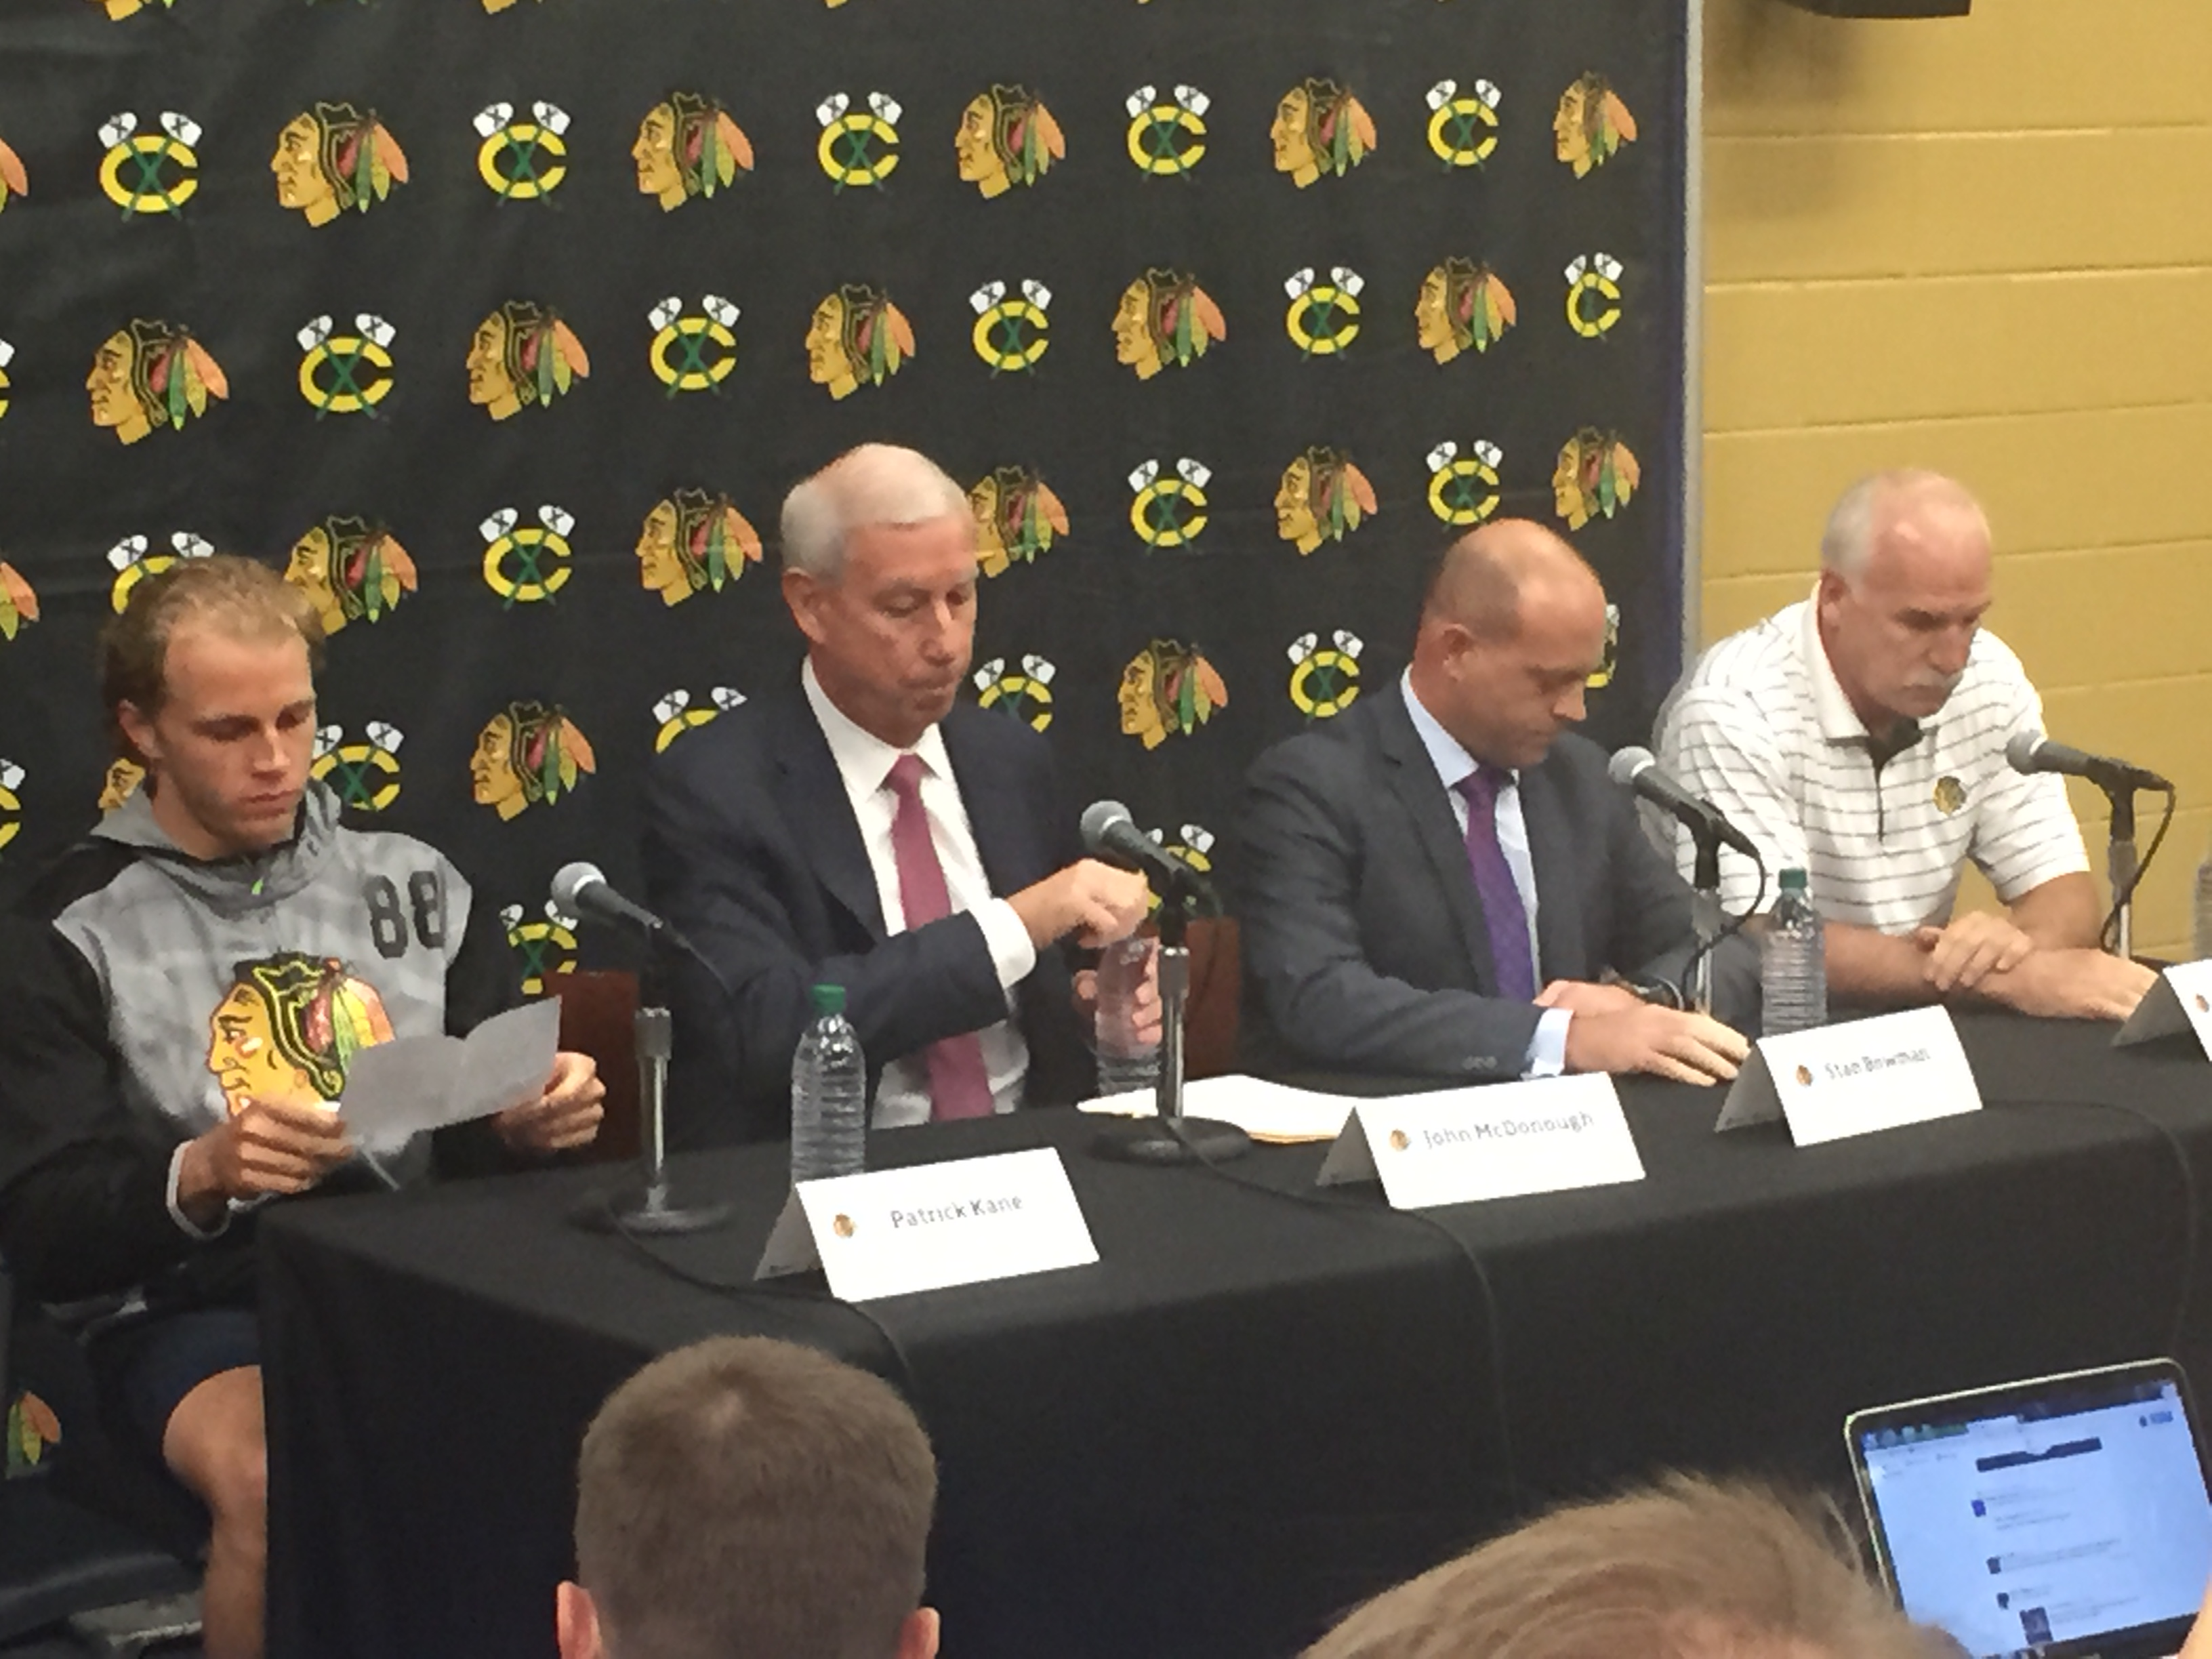 Patrick Kane reviews his statement as Hawks president John McDonough, GM Stan Bowman and coach Joel Quenneville ponder their thoughts prior to the start of Thursday's press conference in South Bend, Ind. (Mike Harrington/Buffalo News).